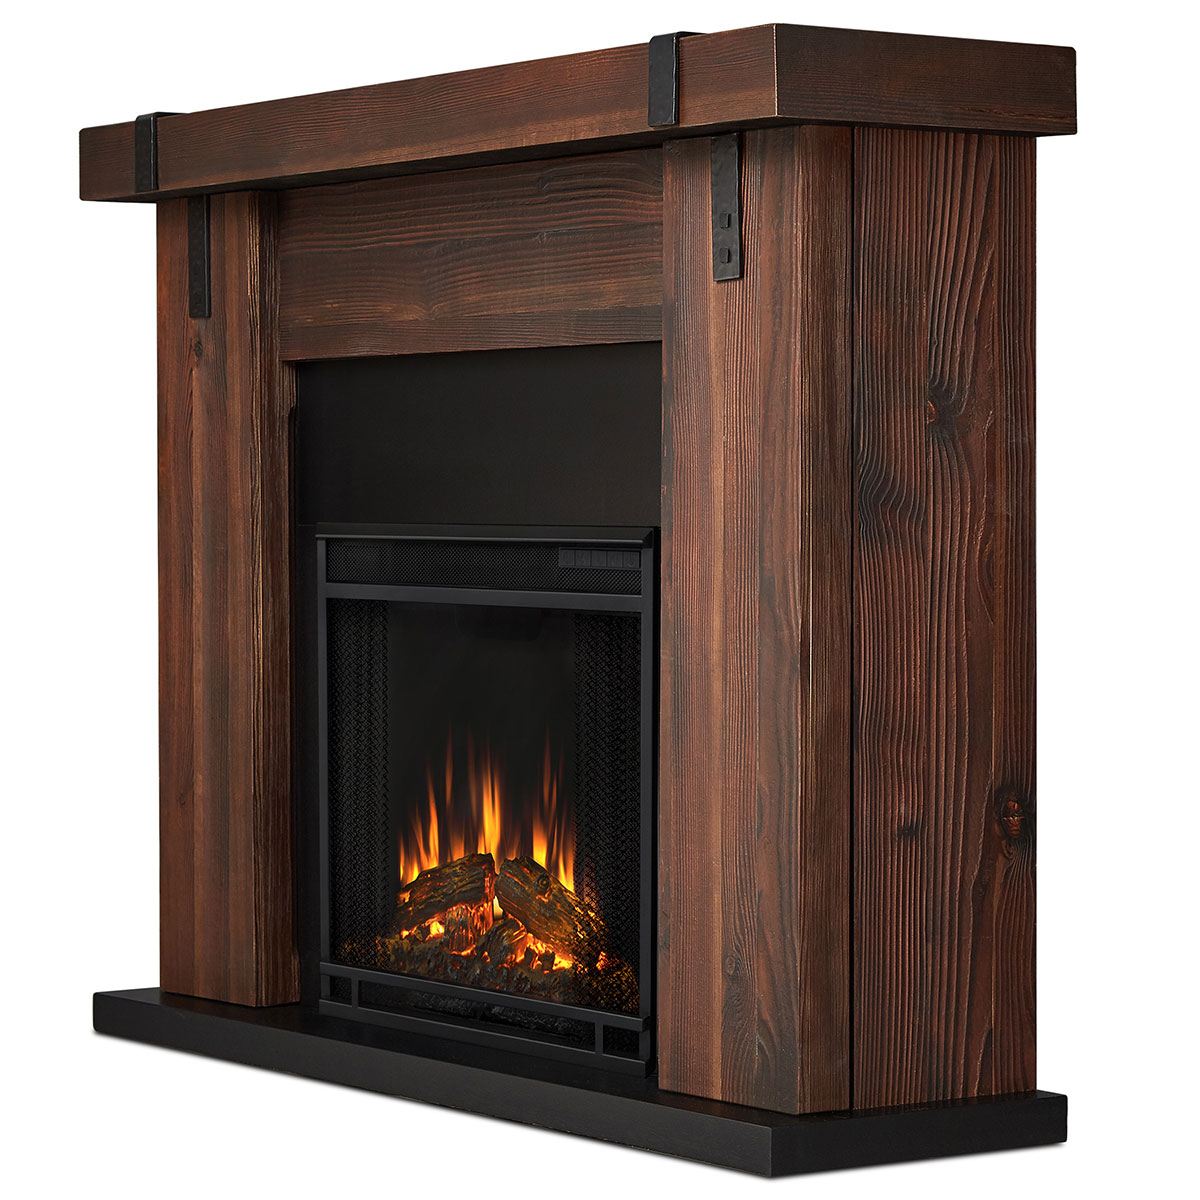 wall lumber sustainable planks reclaimed company products fireplace barnwood wood